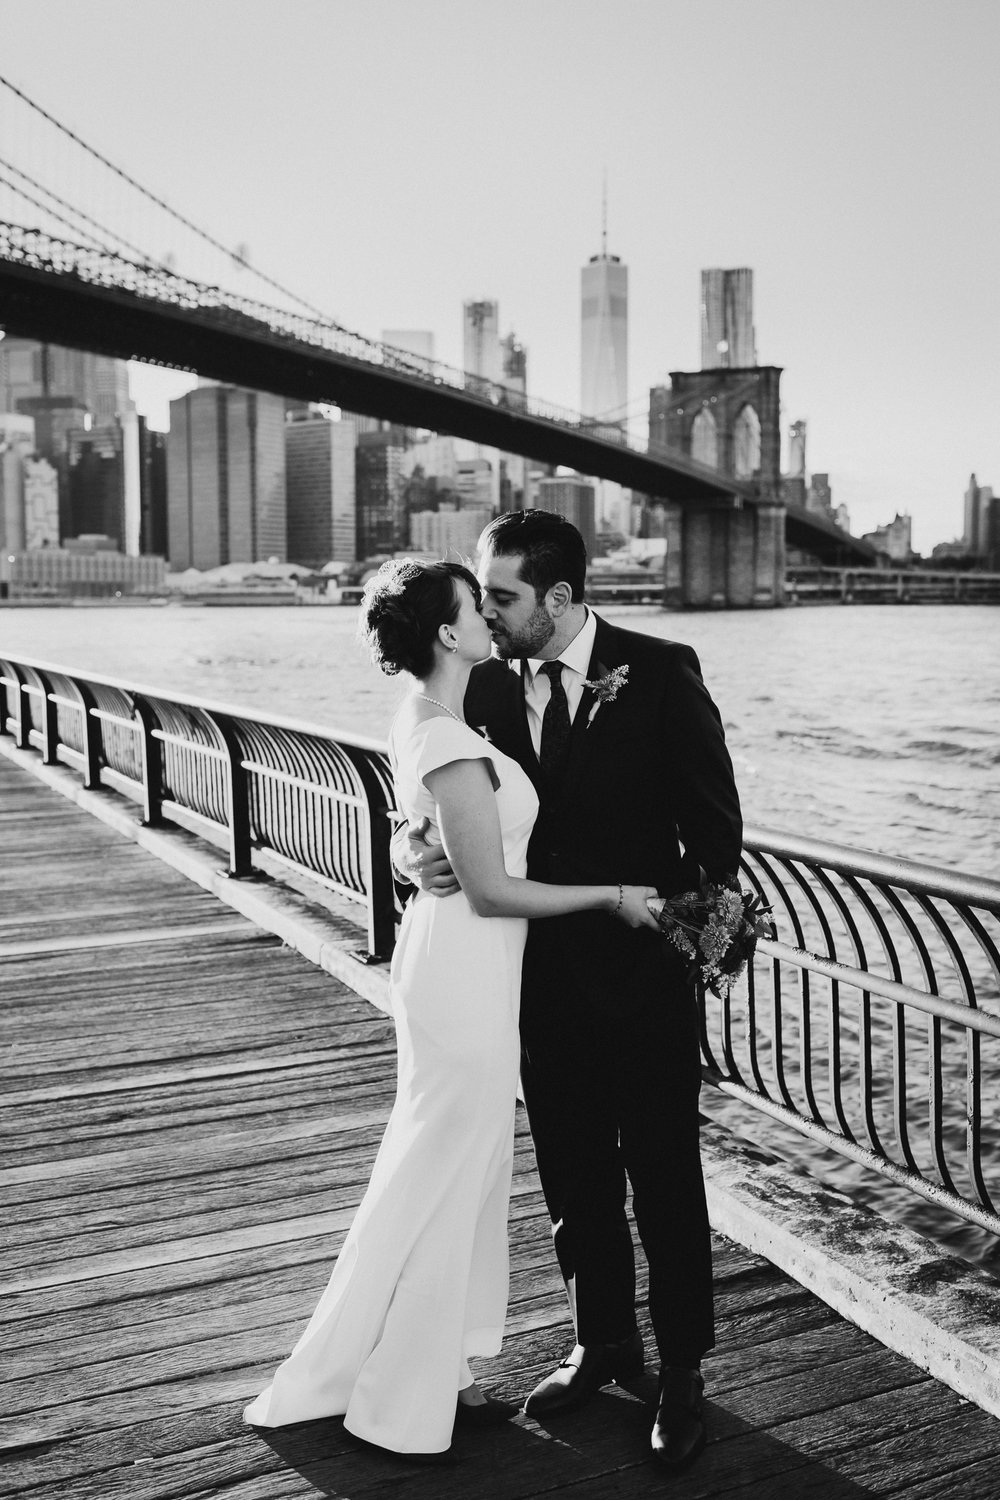 Dumbo-Brooklyn-Bridge-Park-NYC-Elopement-Documentary-Photographer-35.jpg